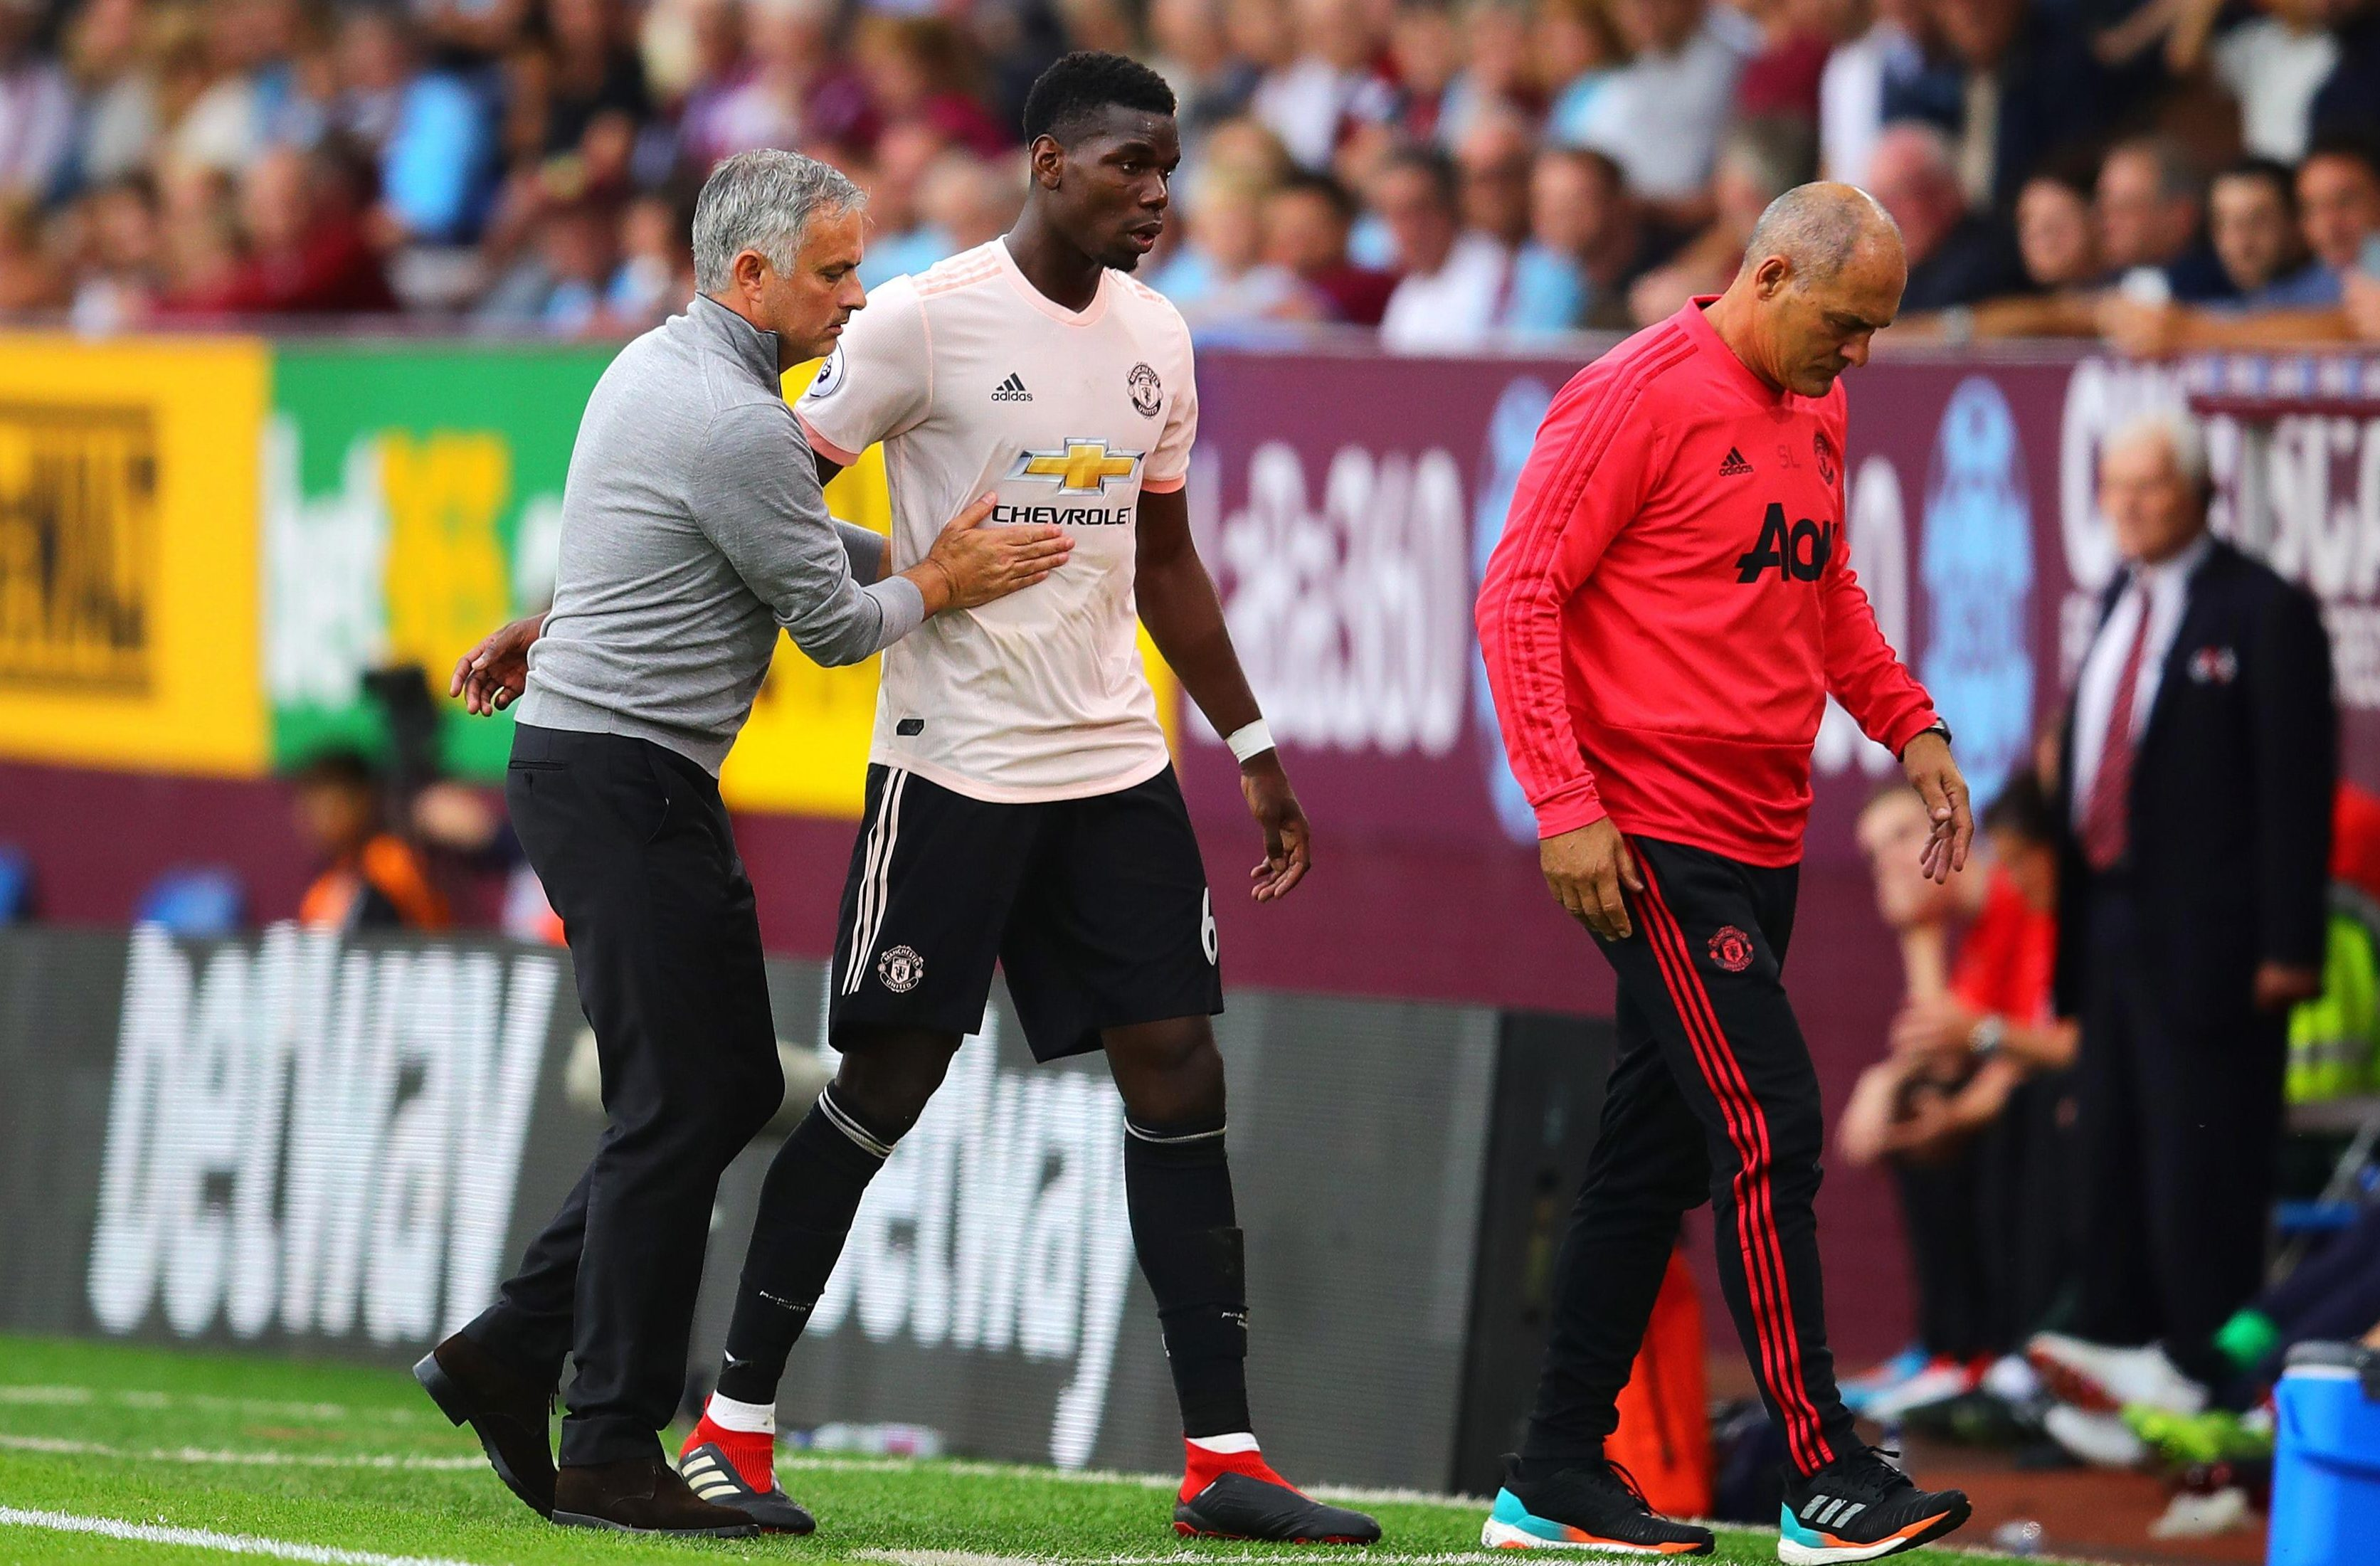 Pogba, middle, and Mourinho's, left, relationship has been put under increased scrutiny this season